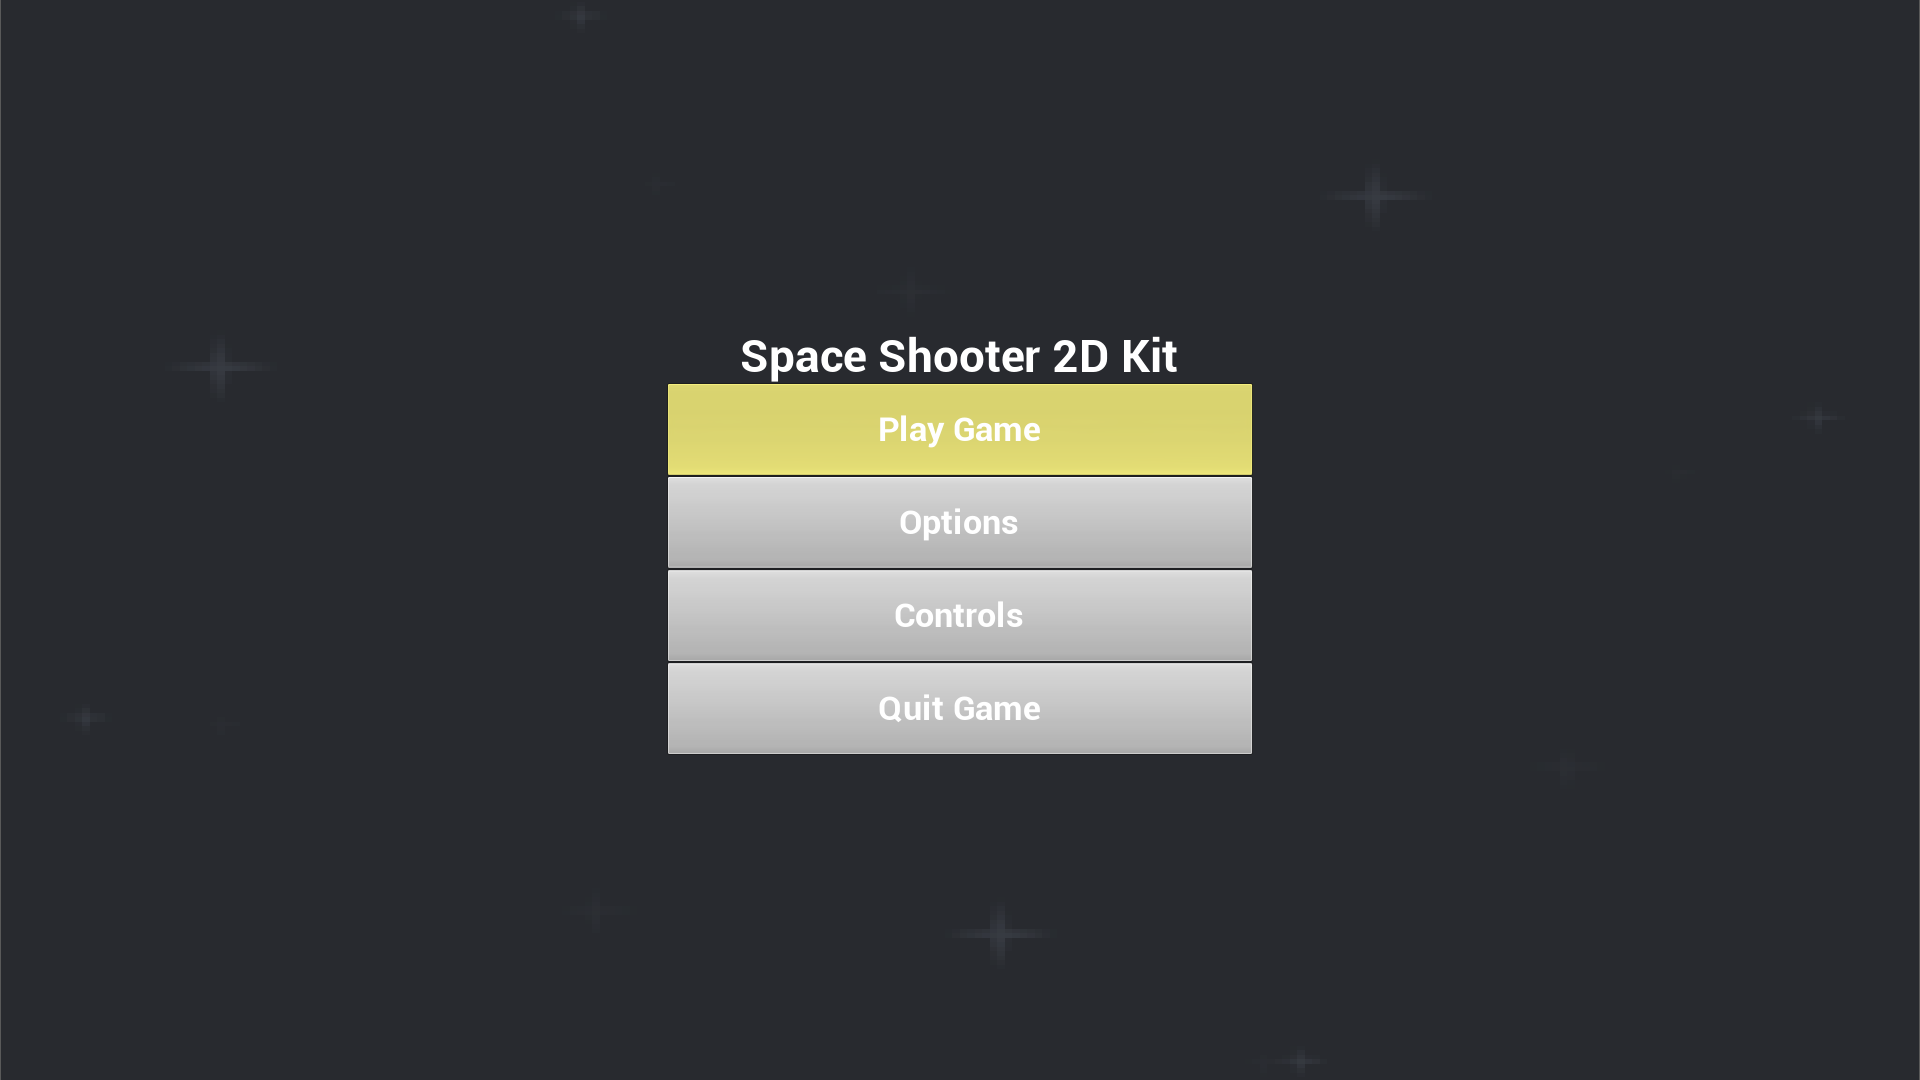 Space Shooter 2D Kit by Graces Games in 2D Assets - UE4 ...